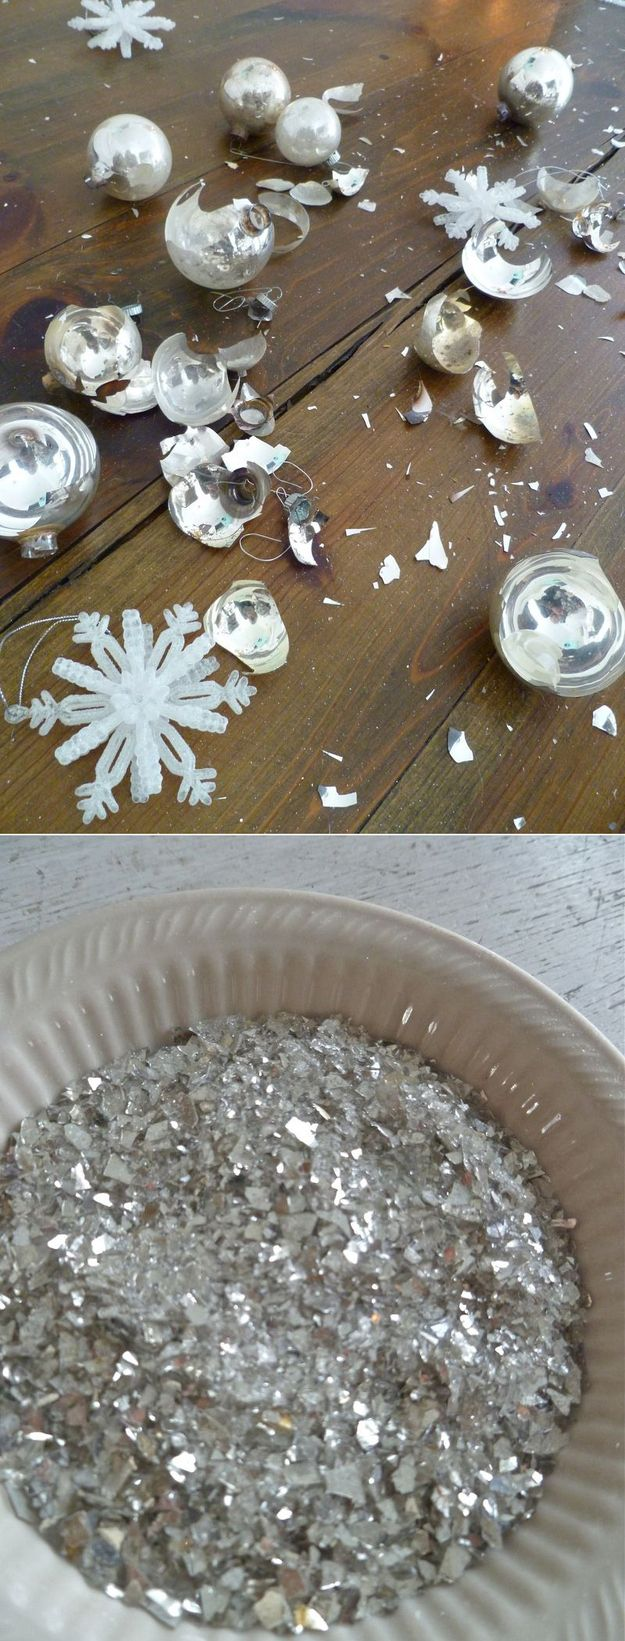 Glue for glass ornaments - Turn Those Broken Ornaments Into Glitter Glitter Glue Craftsbroken Glass